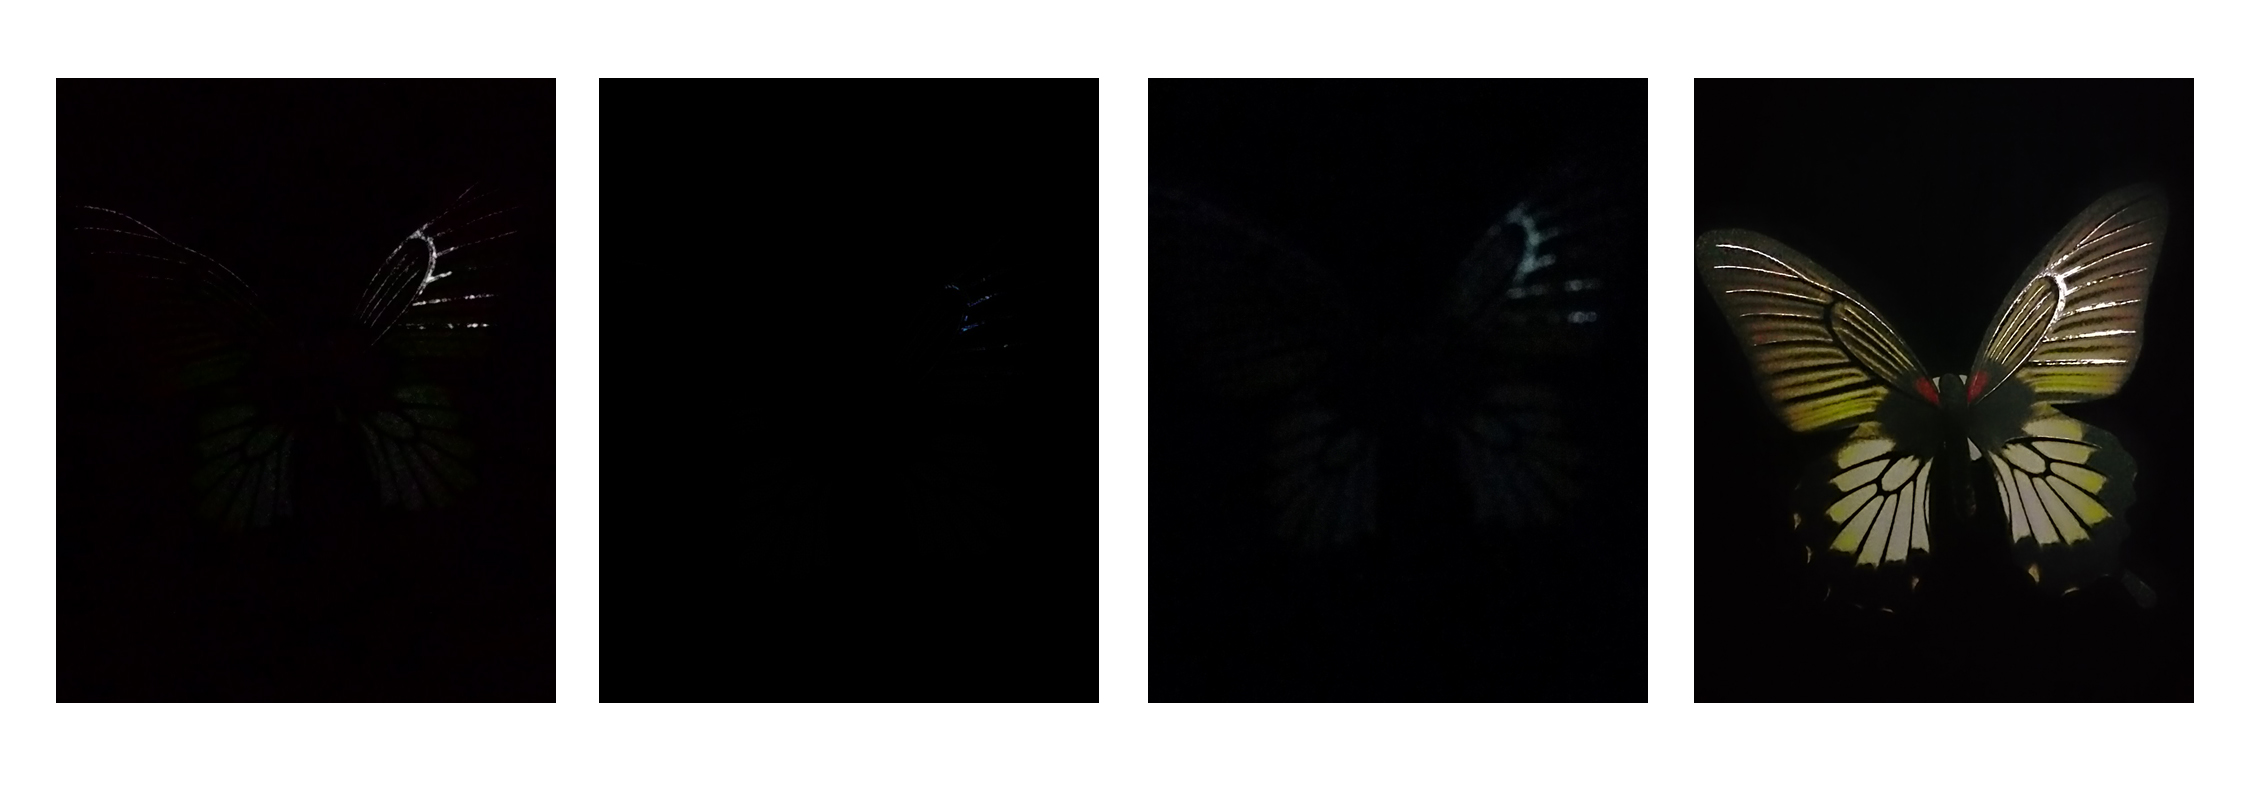 Photos taken in Auto mode.<br>Left to right: ASUS ZenFone 5, HTC One (M8), Samsung Galaxy S5 and Sony Xperia Z2.